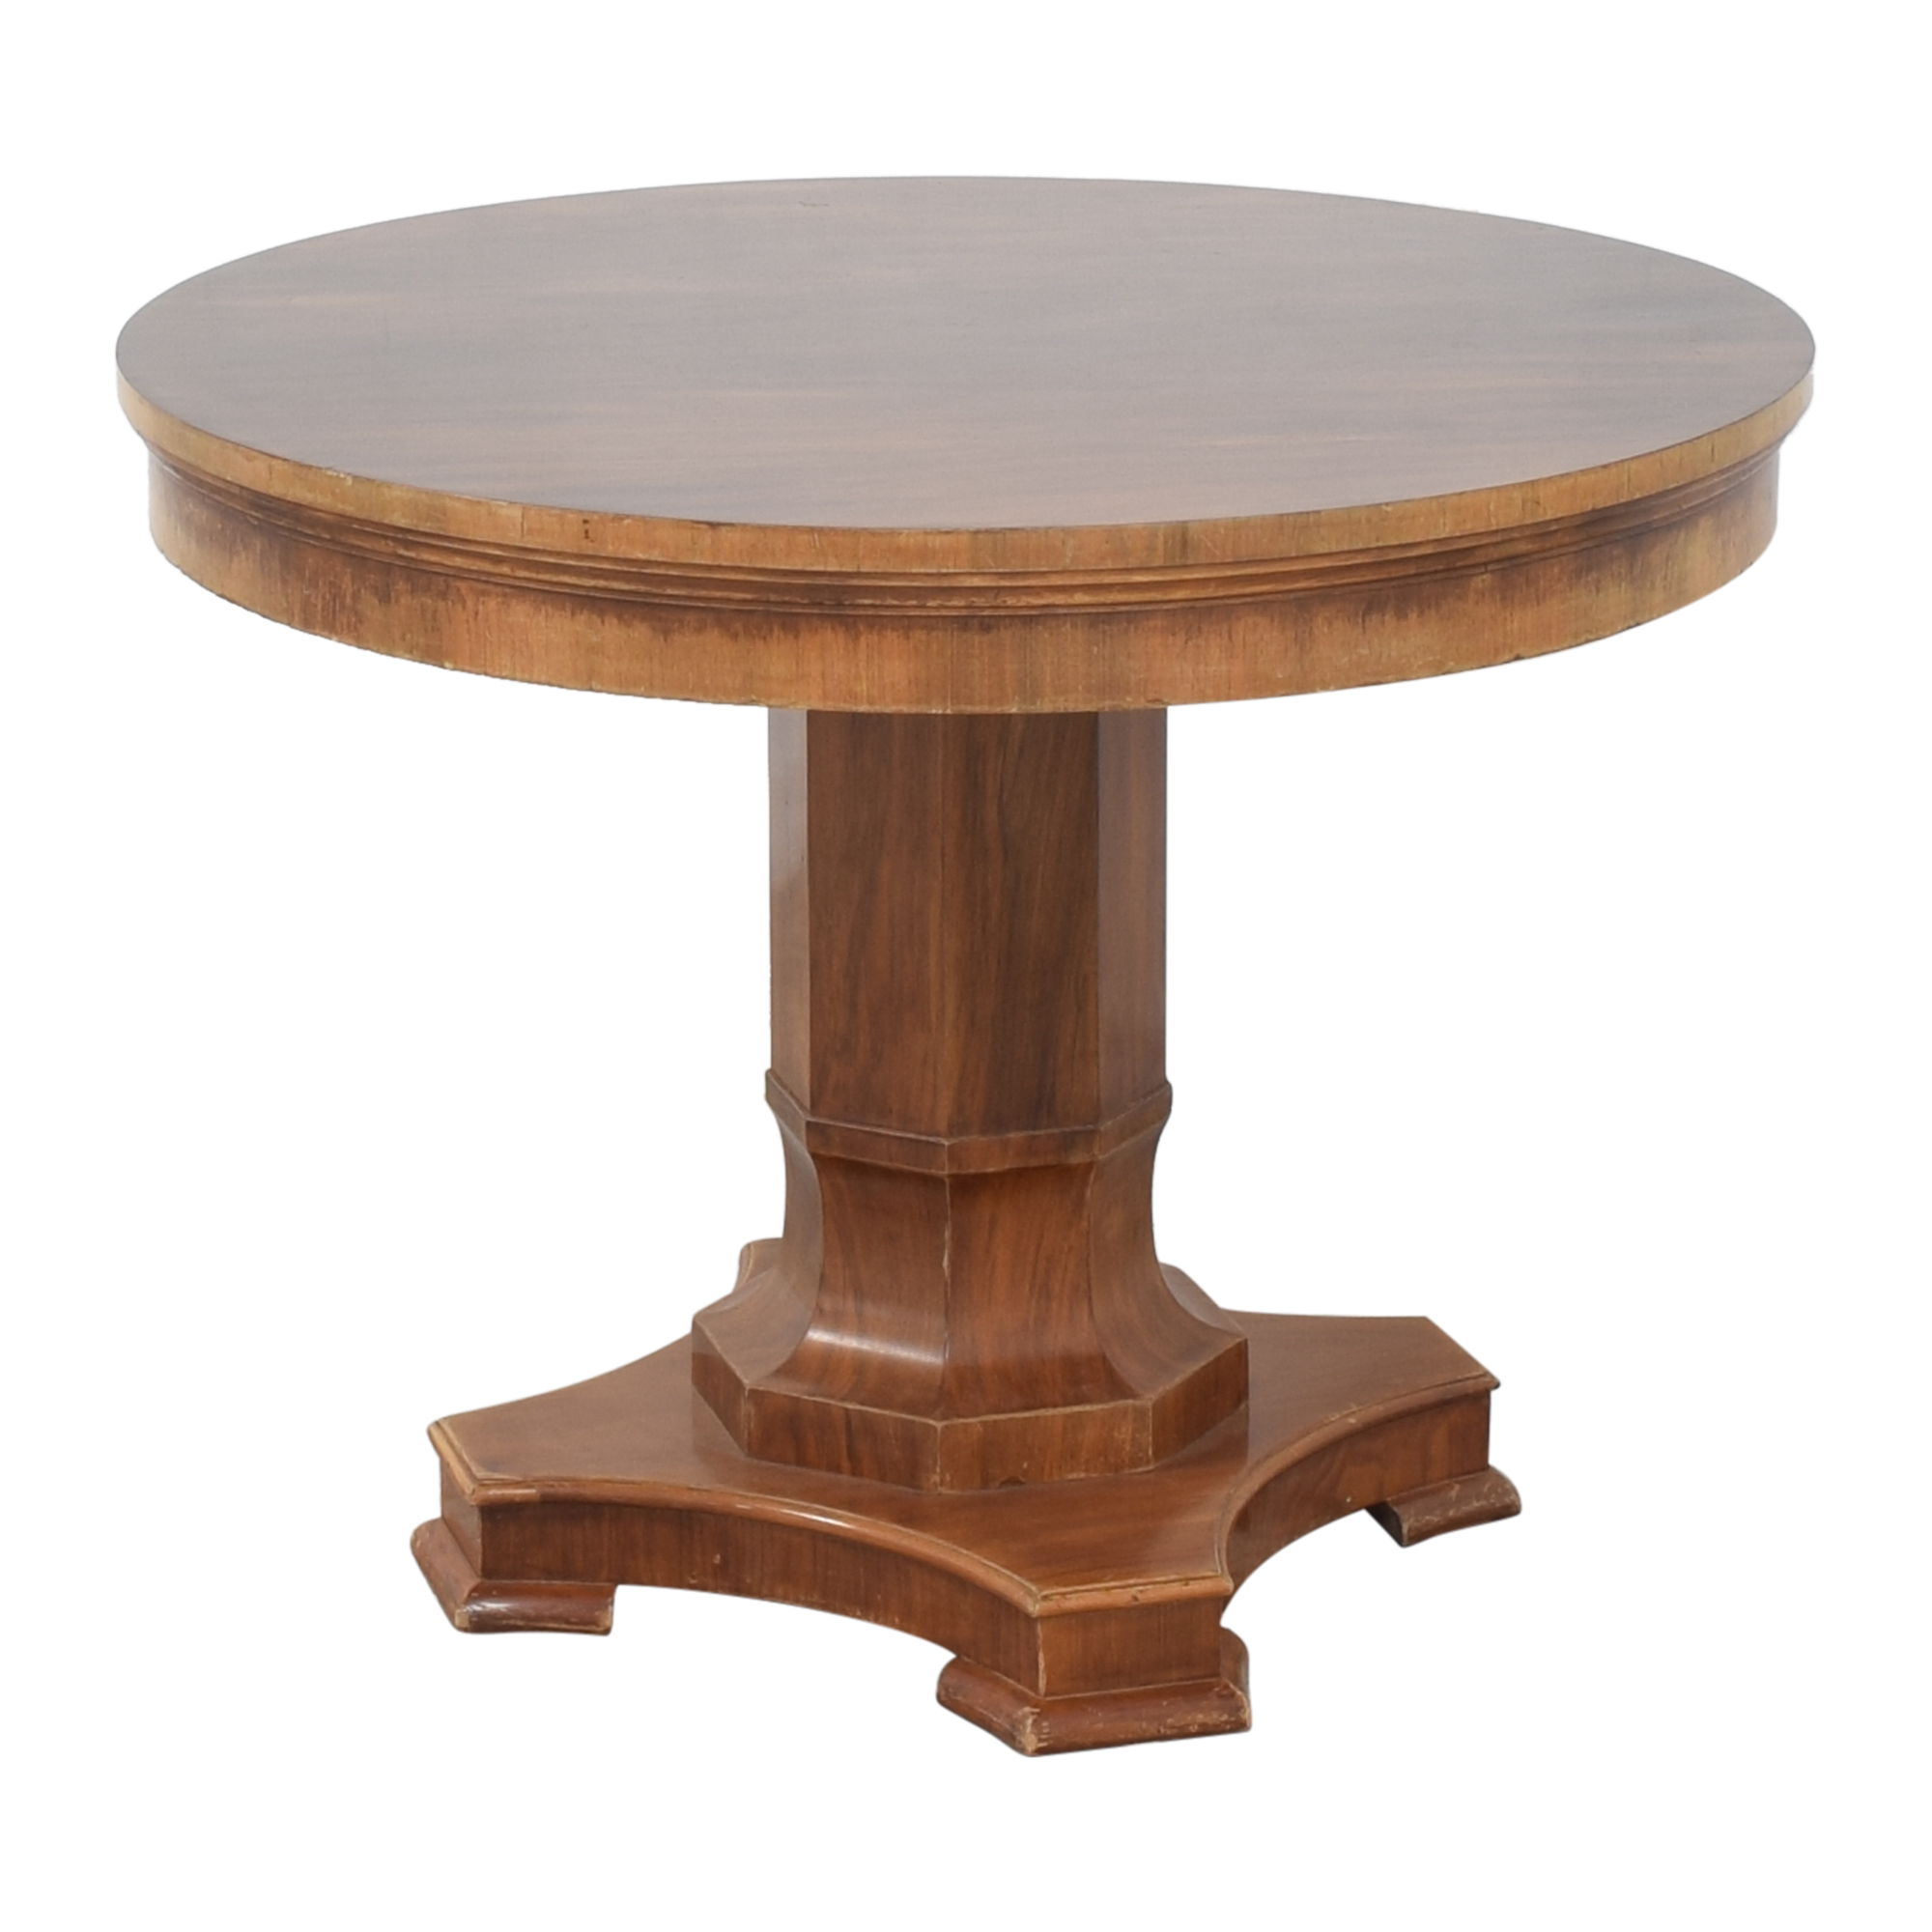 Antique Round Pedestal Table price